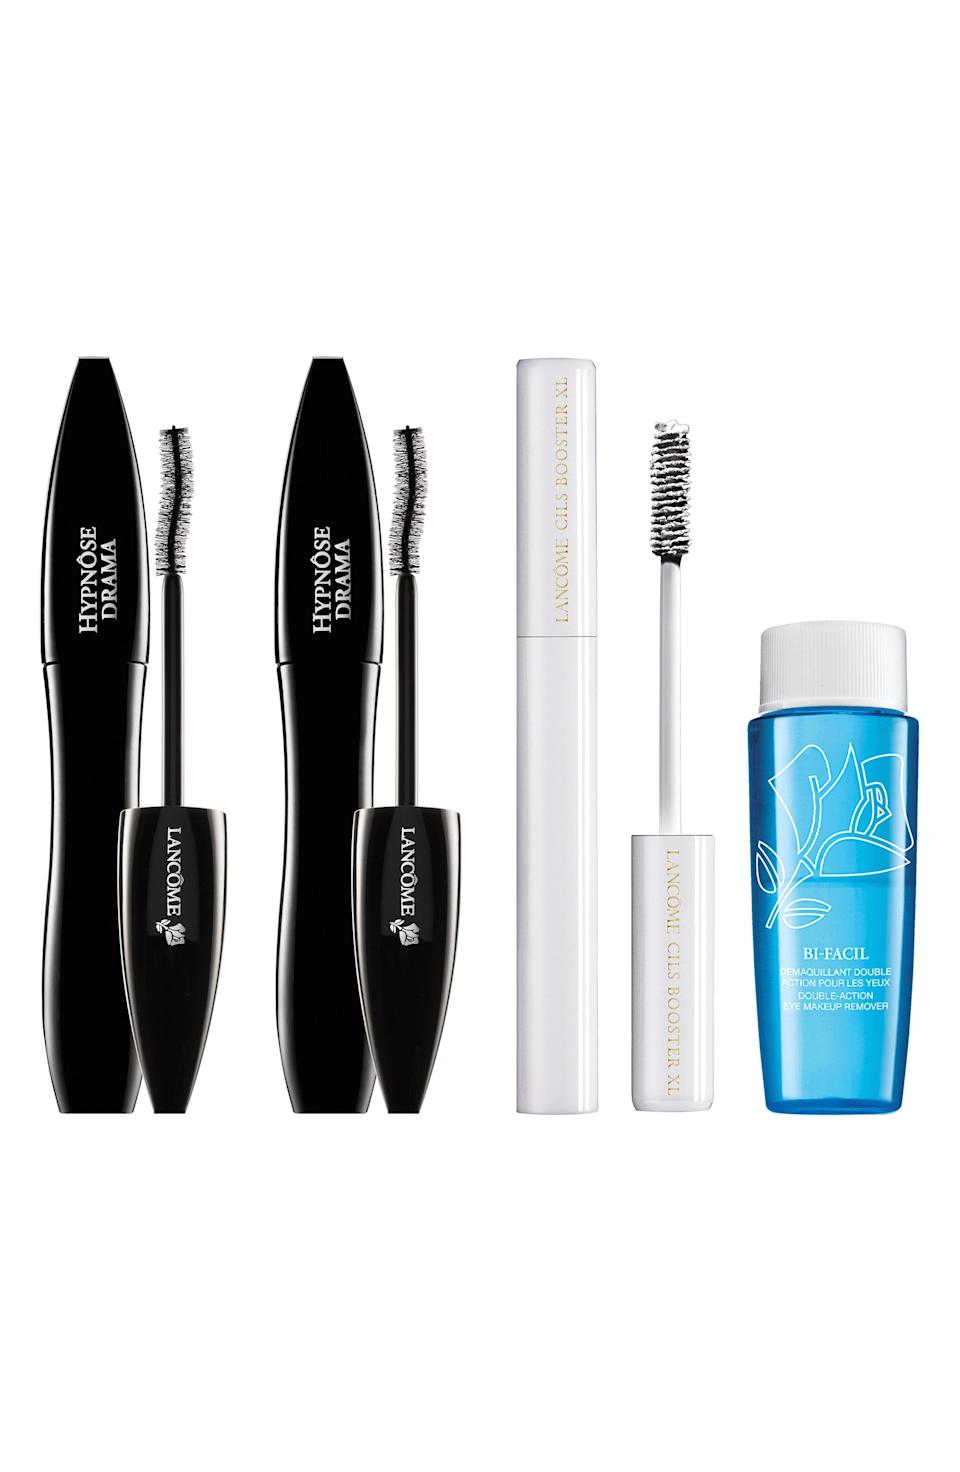 """<p><strong>Lancôme</strong></p><p>nordstrom.com</p><p><strong>$61.00</strong></p><p><a href=""""https://go.redirectingat.com?id=74968X1596630&url=https%3A%2F%2Fwww.nordstrom.com%2Fs%2Flancome-hypnose-drama-mascara-set-98-value%2F5914790&sref=https%3A%2F%2Fwww.elle.com%2Fbeauty%2Fg36944650%2Fnorstrom-anniversary-beauty-sale-2021%2F"""" rel=""""nofollow noopener"""" target=""""_blank"""" data-ylk=""""slk:Shop Now"""" class=""""link rapid-noclick-resp"""">Shop Now</a></p><p>This mascara and primer combo adds so much length that a stiff wind might lift you off your feet. Plus, the set comes with a makeup remover that'll make cleansing your face a breeze.</p>"""